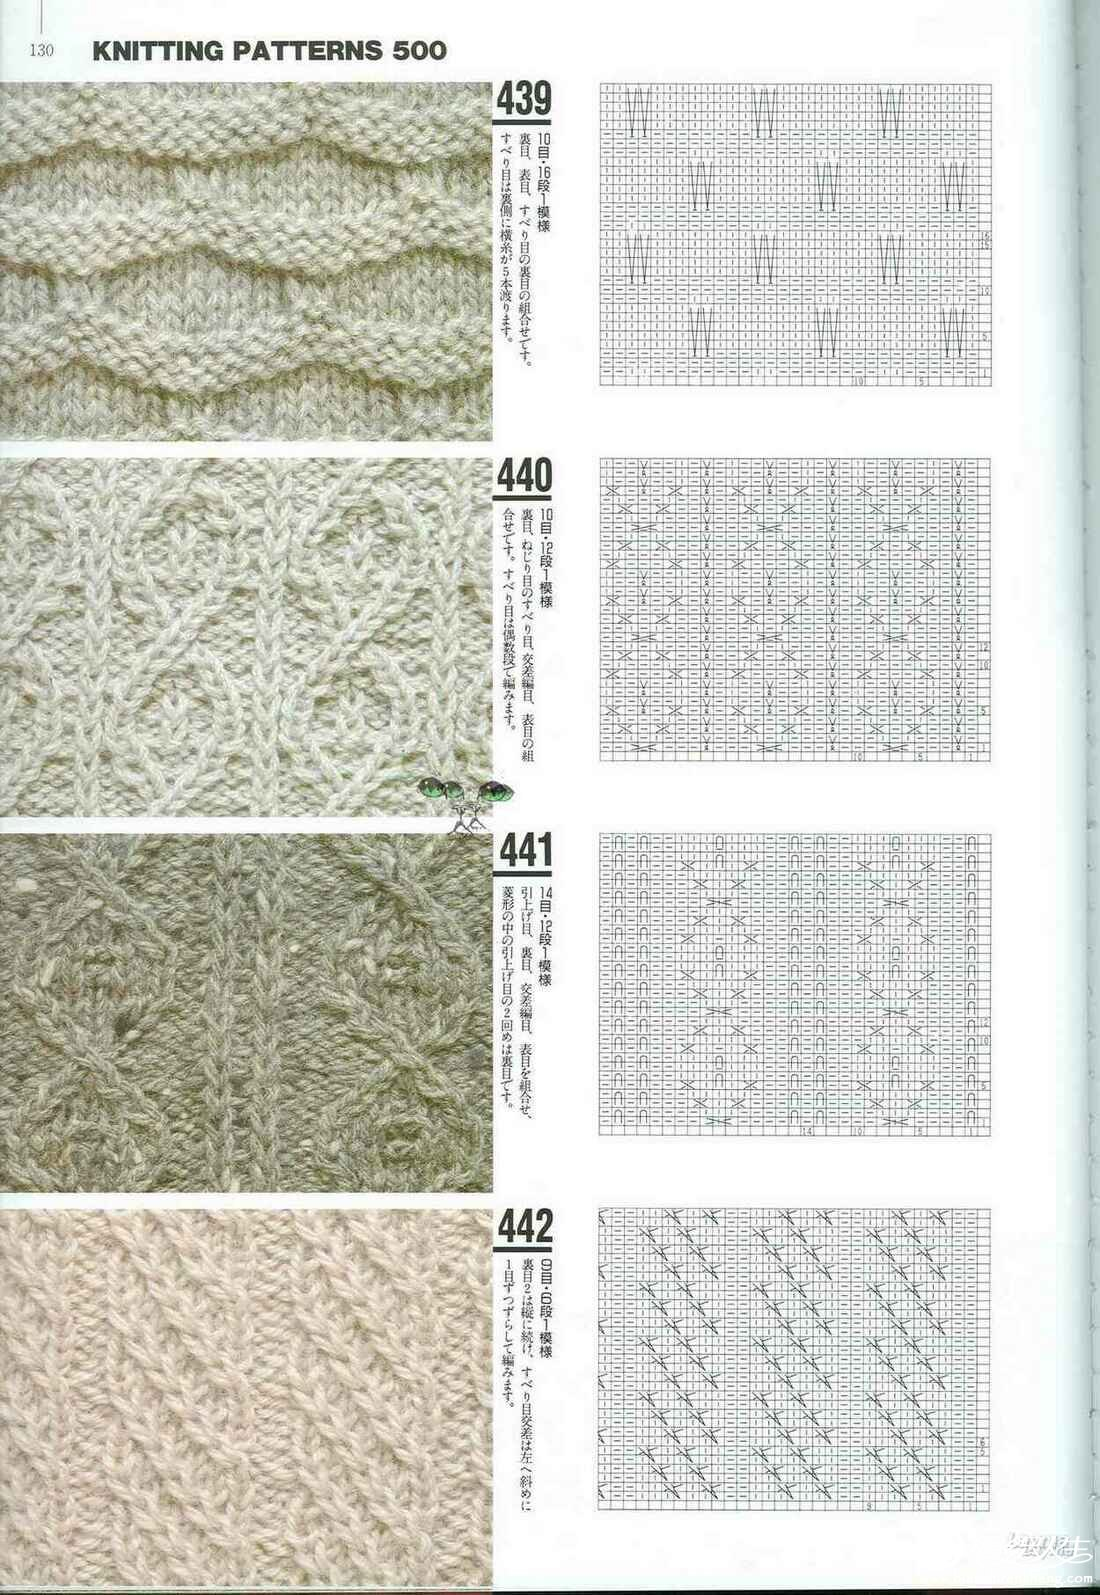 Knitting Patterns 500 127.jpg